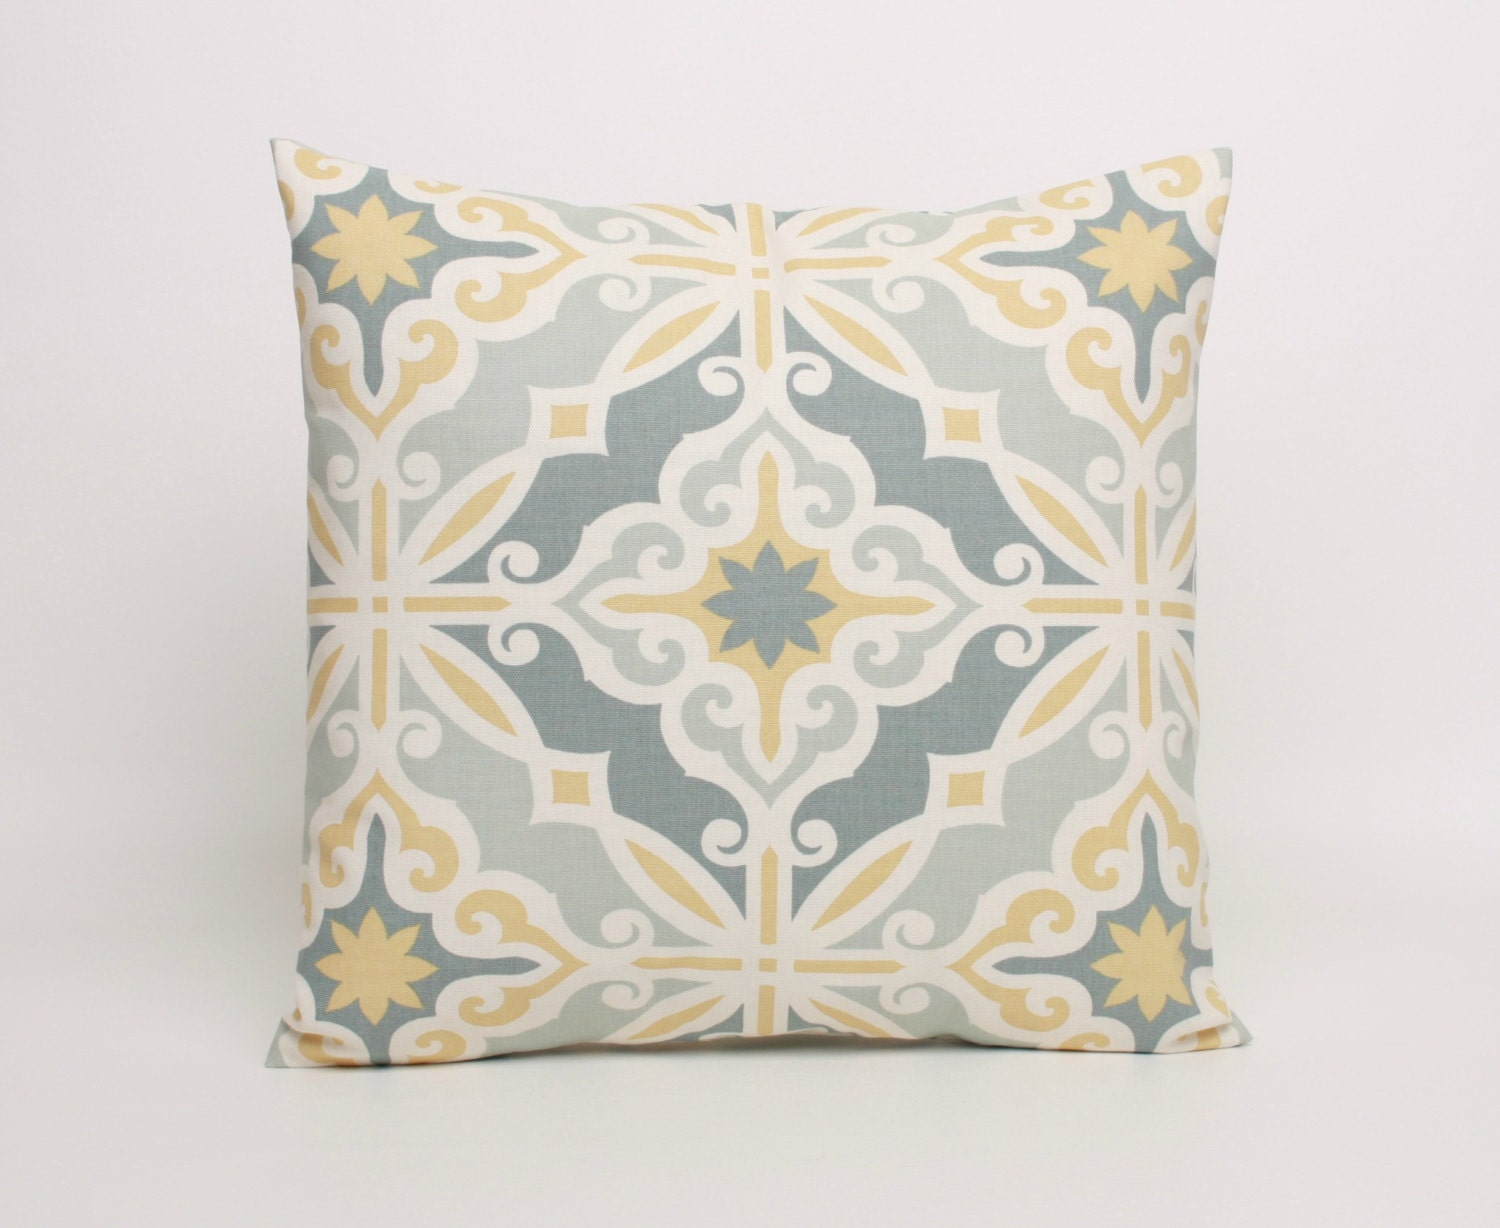 22x22 Throw Pillow Covers : Yellow and Gray Throw Pillow Cover 22x22 by DimensionsHomeDecor